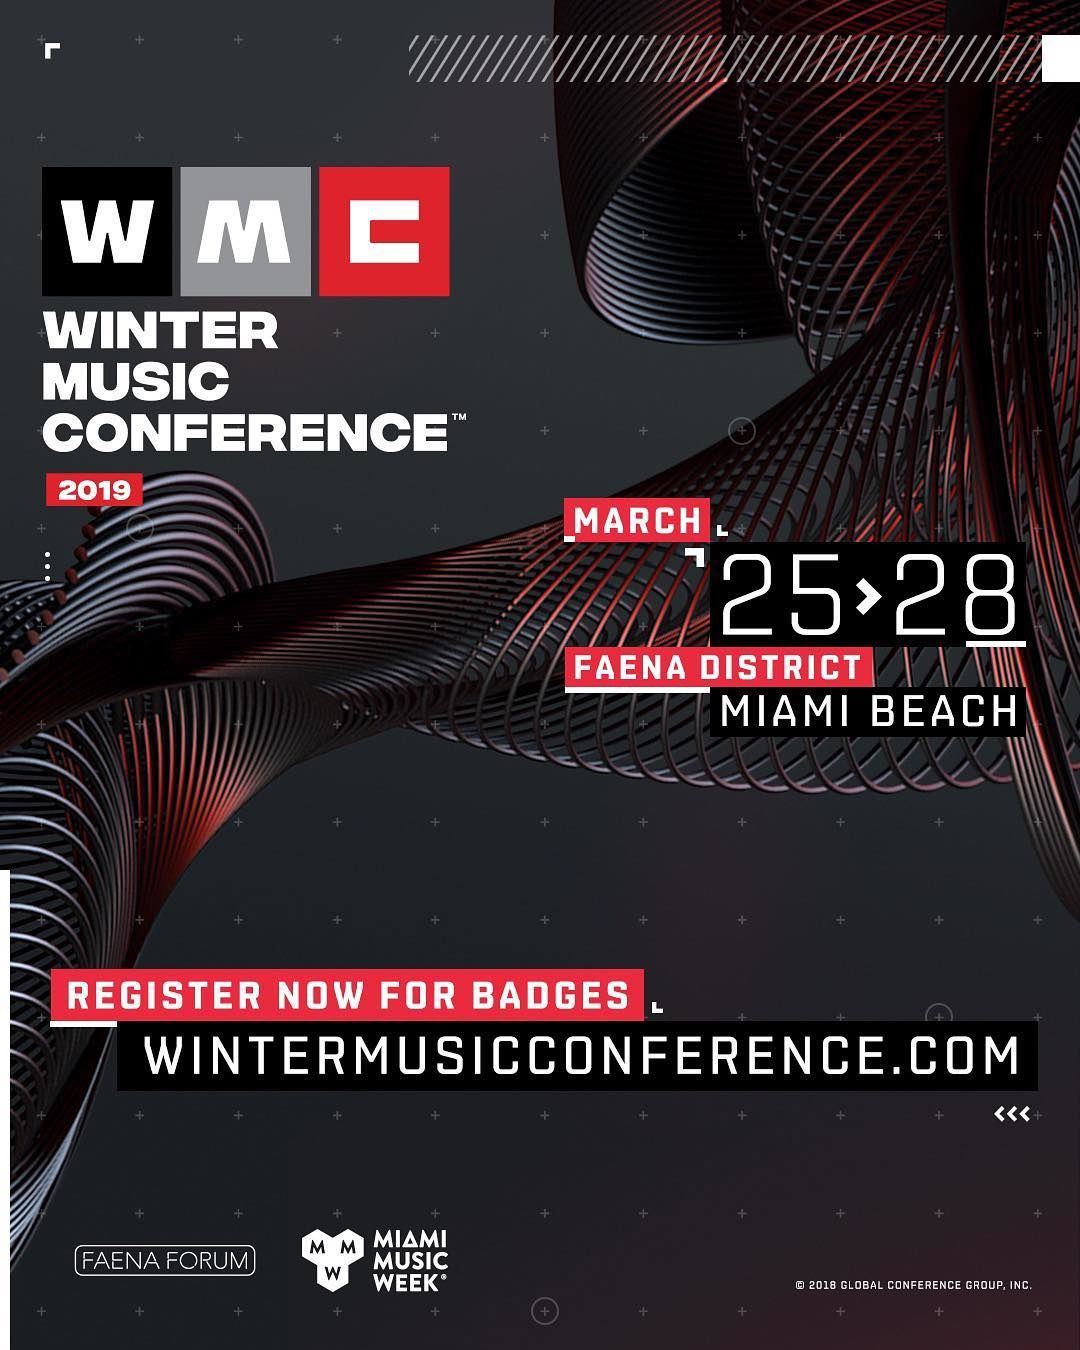 Winter Music Conference will return to Miami Beach next March